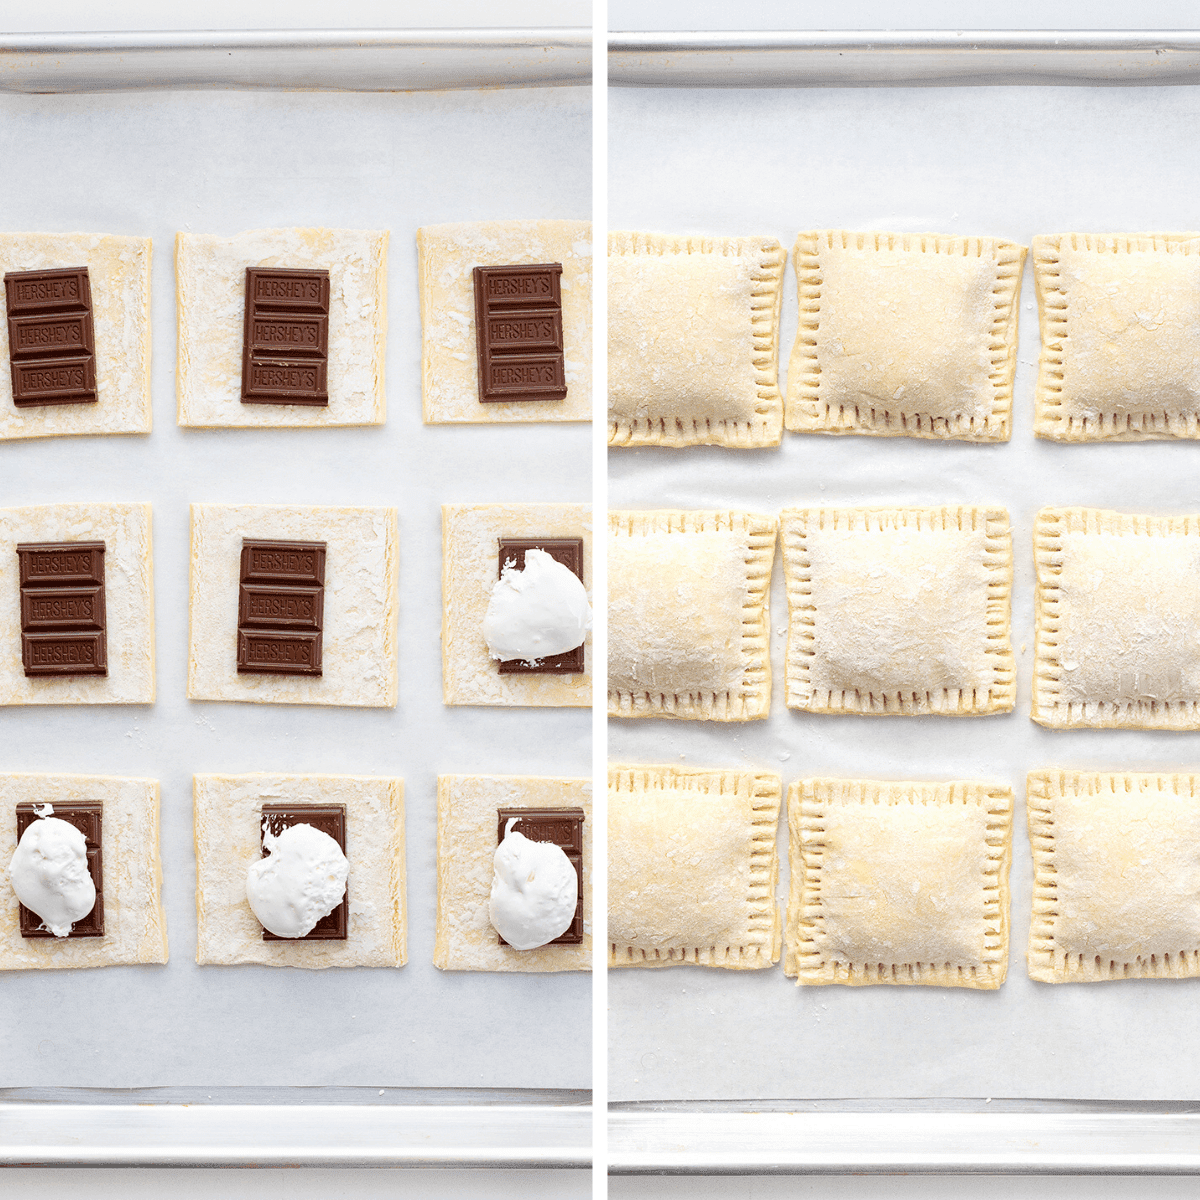 How to Assemble Ultimate Smores - Puff Pastry Smores